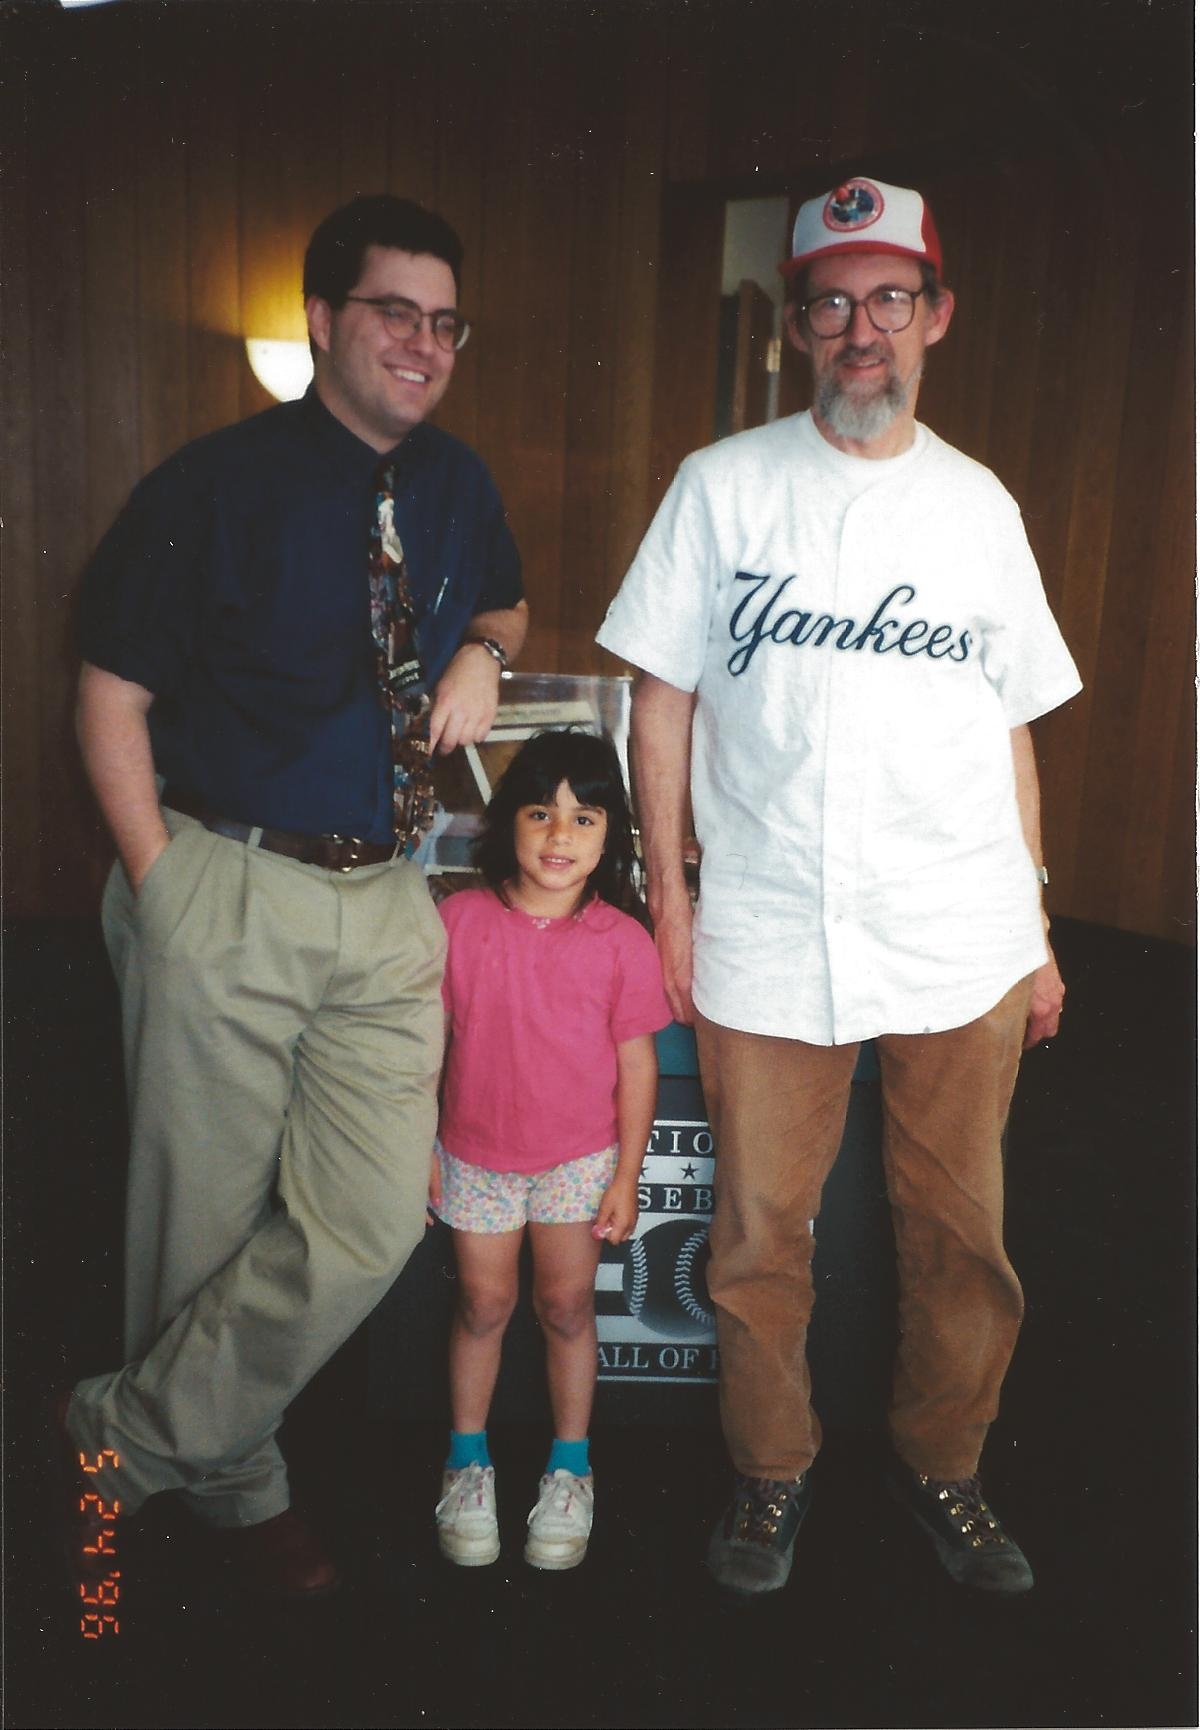 The only father Roxana ever knew: Craig on his 50th birthday (1996) with 5-yr-old Roxana and a historian at National Baseball Hall of Fame, Cooperstown, NY - by then he had lost a lot of weight (he ate well and did exercise during marriage)